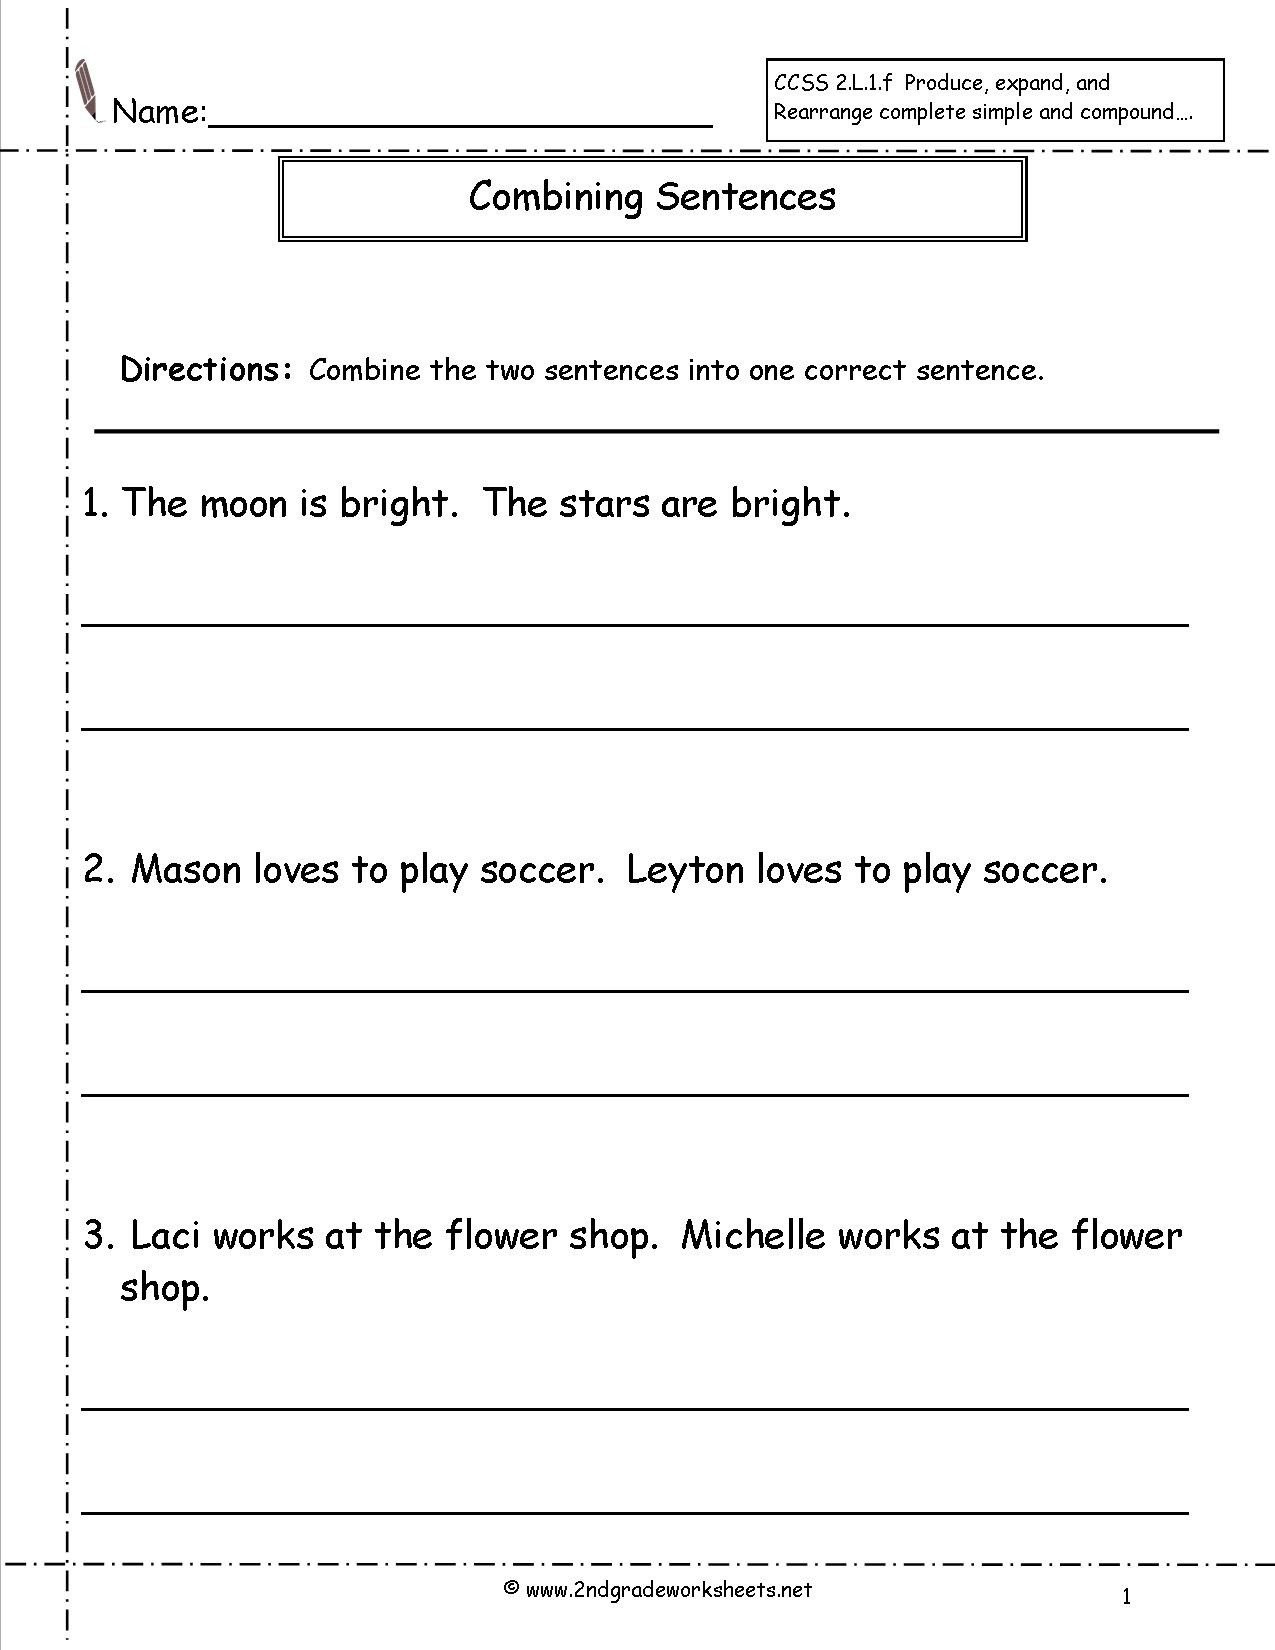 Topic Sentences Worksheets 3rd Grade Pound Sentences Worksheet 3rd Grade